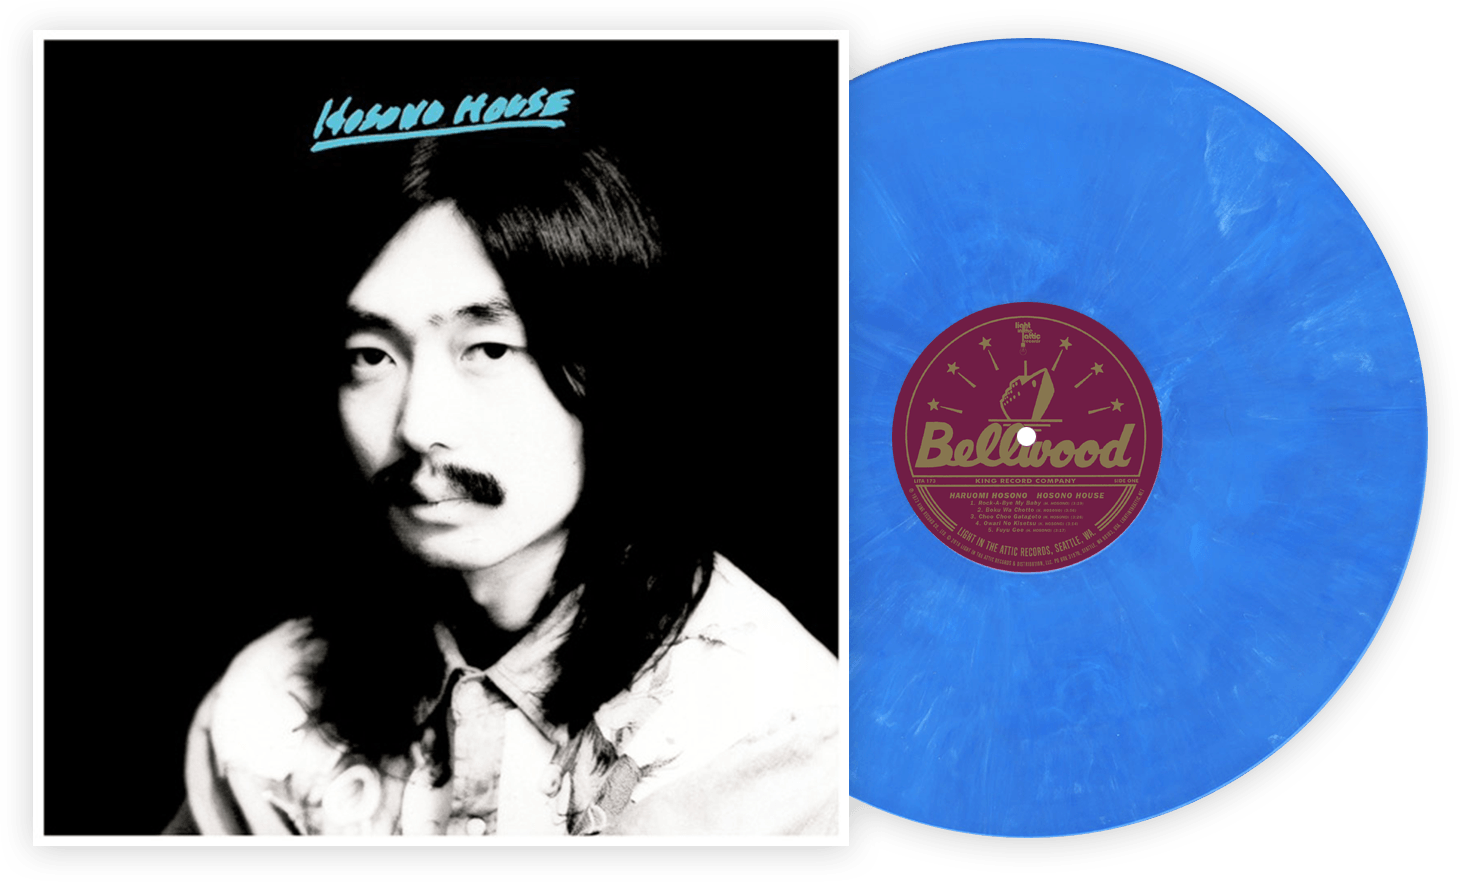 Hosono House Product